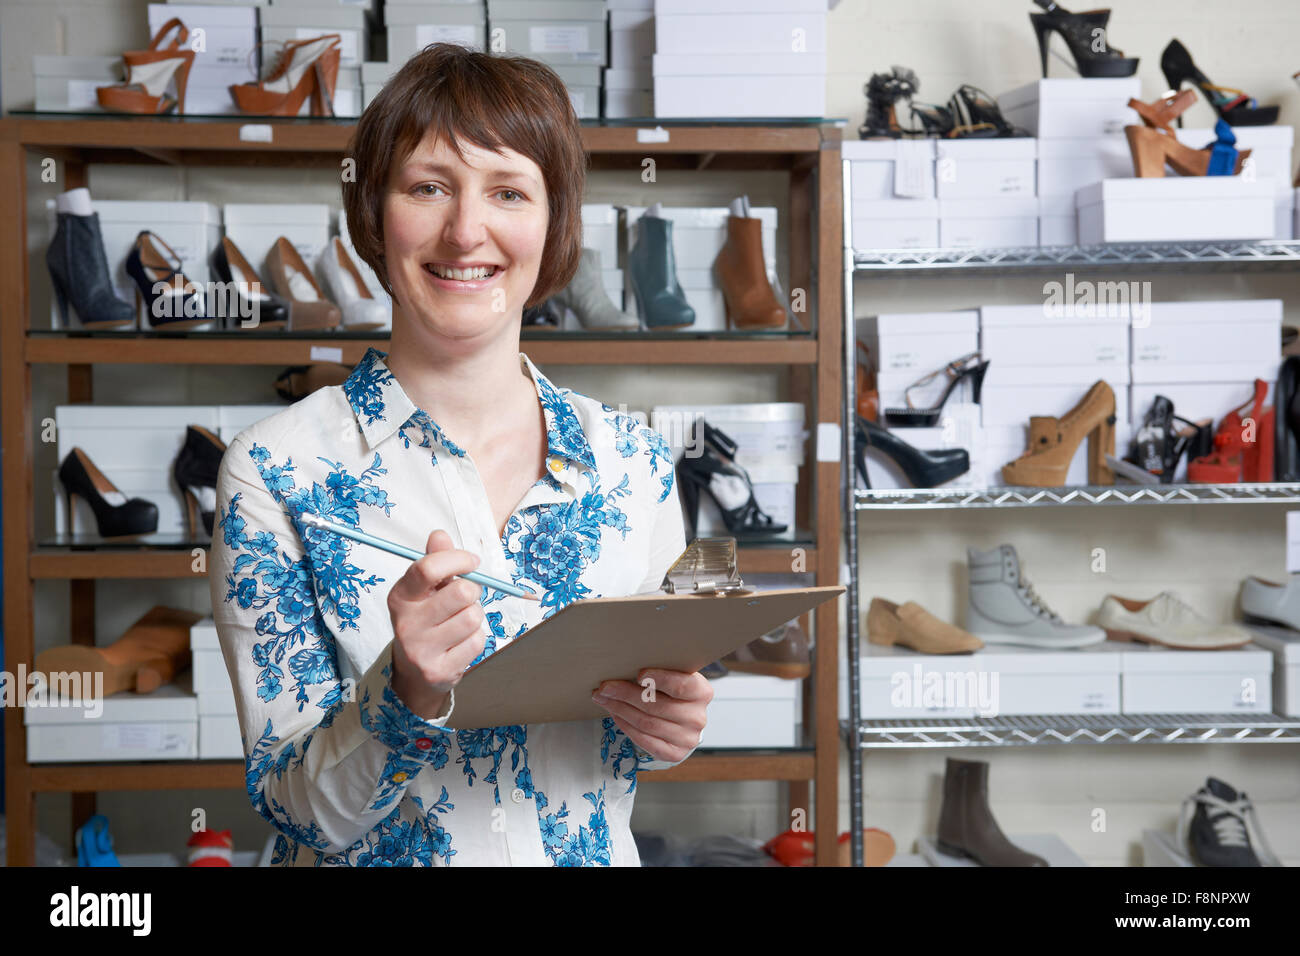 Female Owner Of Online Shoe Business With Clipboard - Stock Image